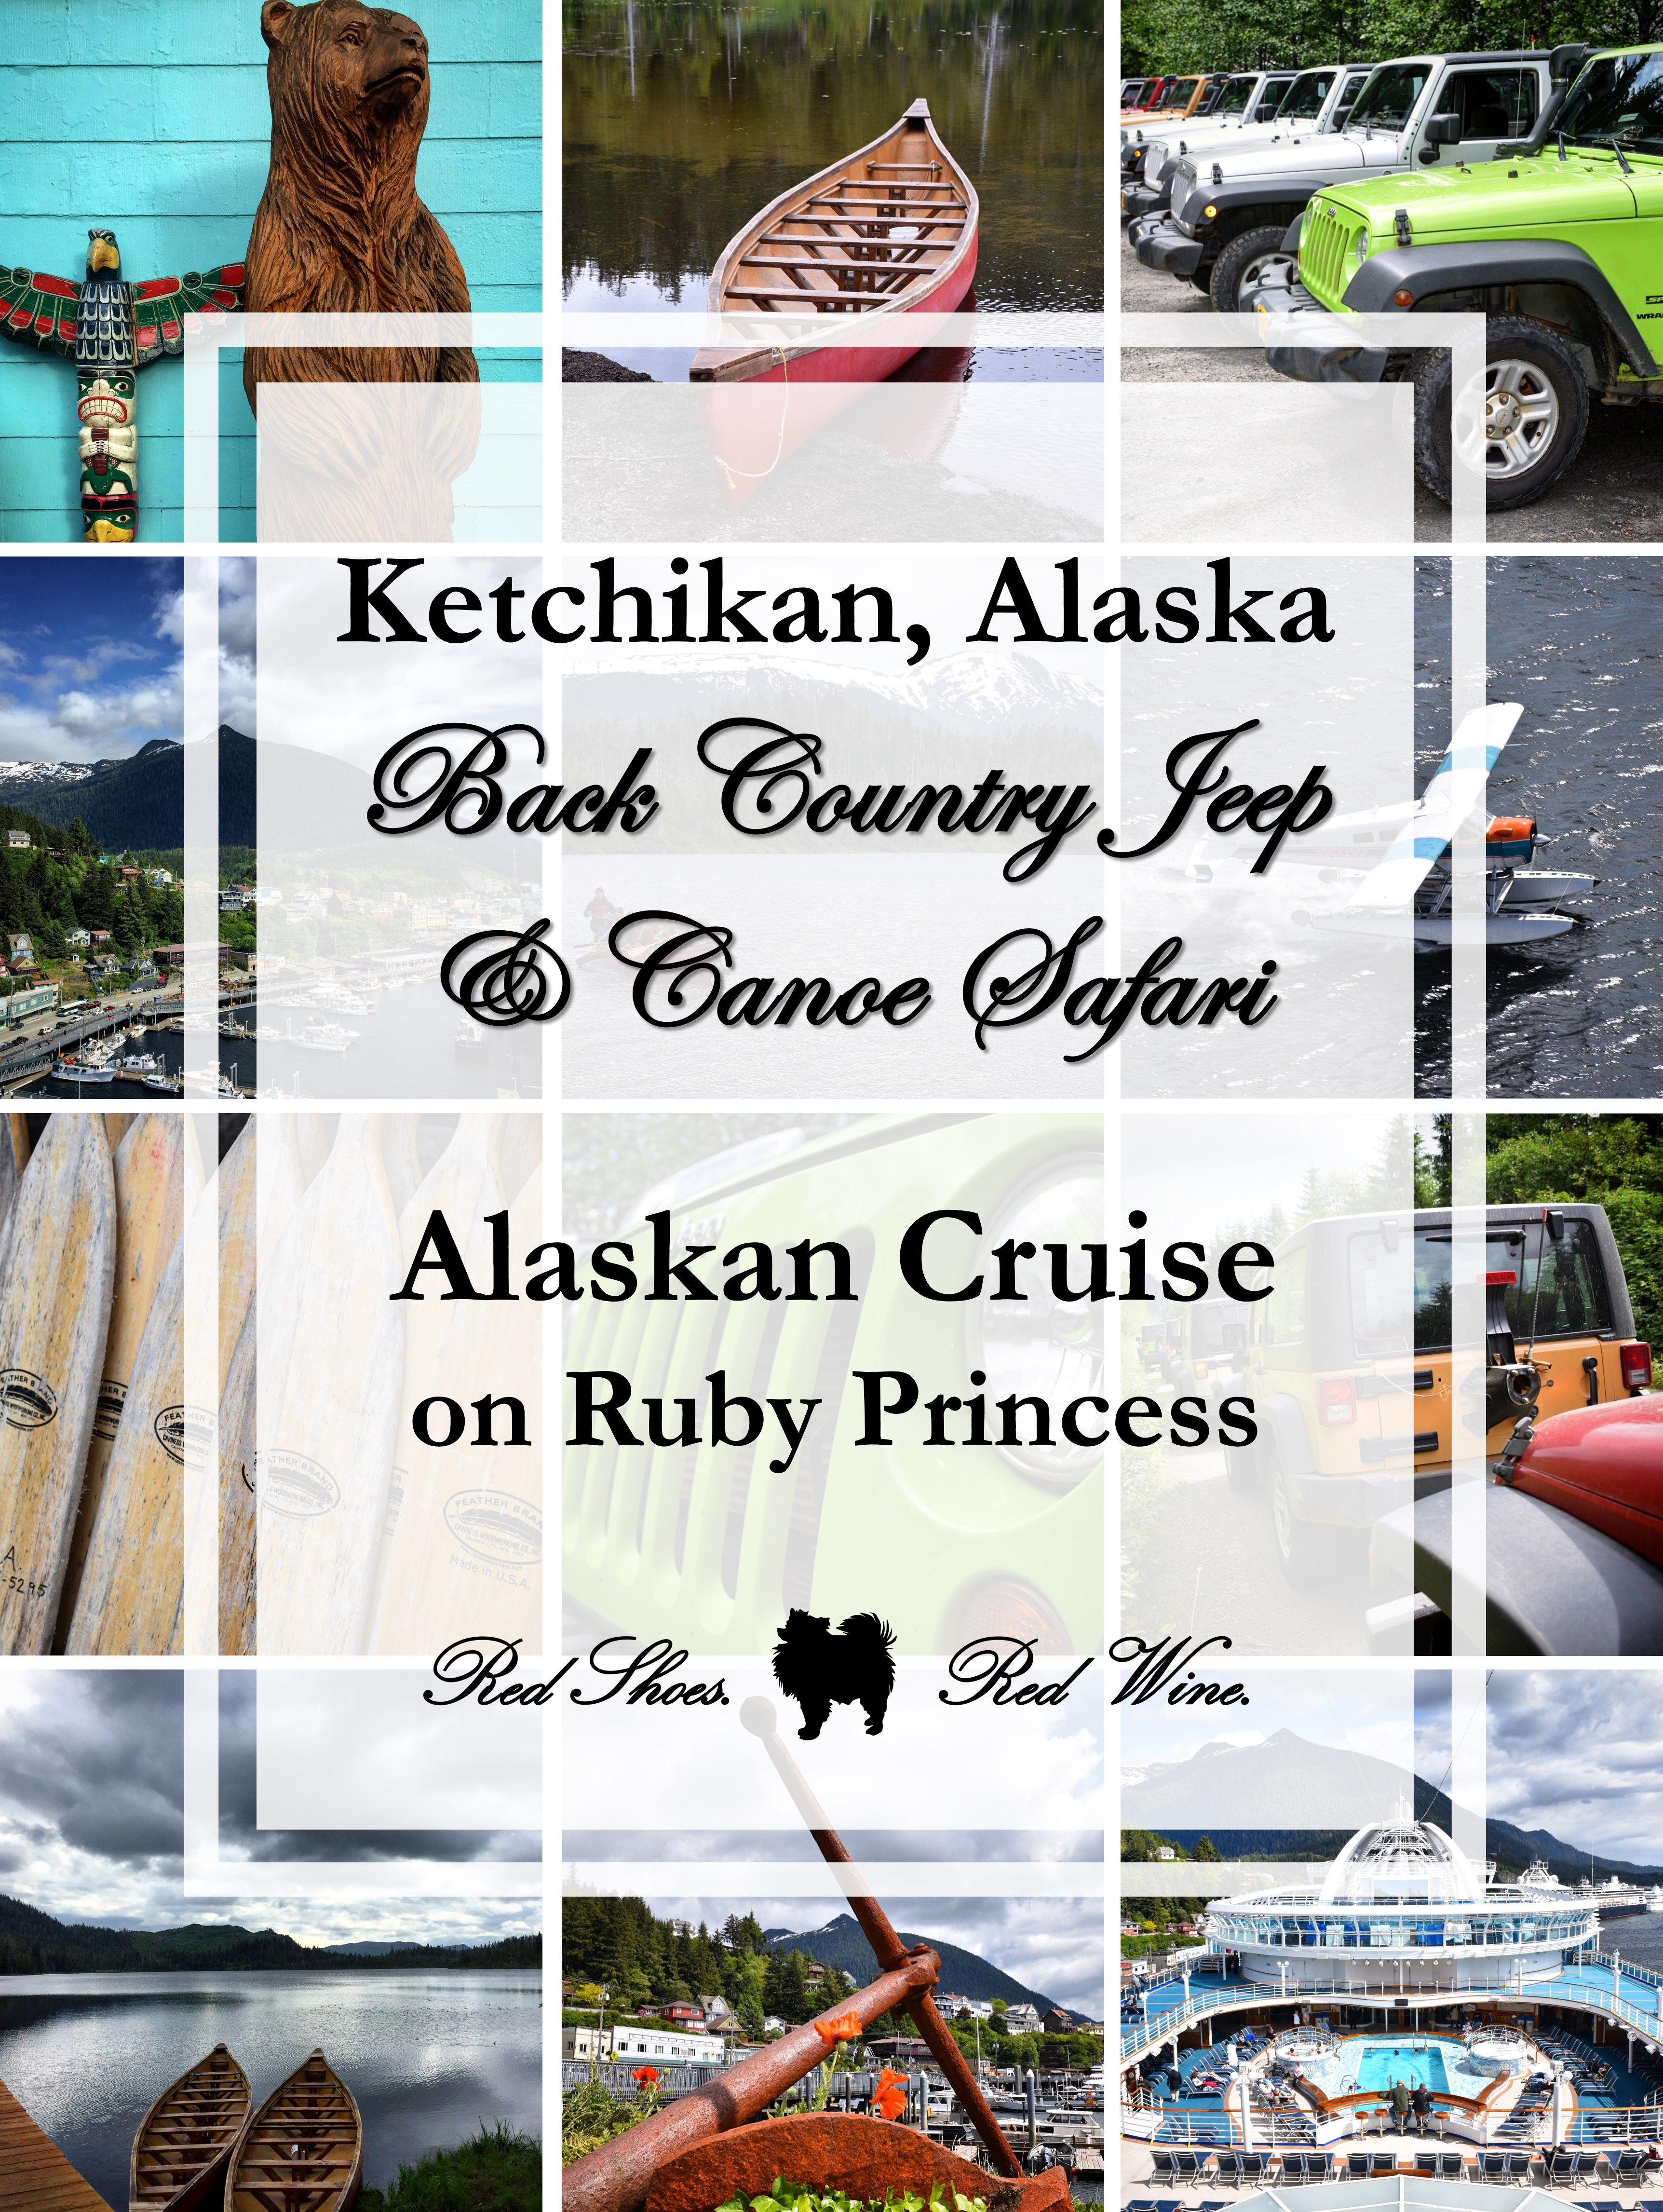 All About Our Back Country Jeep U0026 Canoe Safari Excursion In Ketchikan,  Alaska During Our